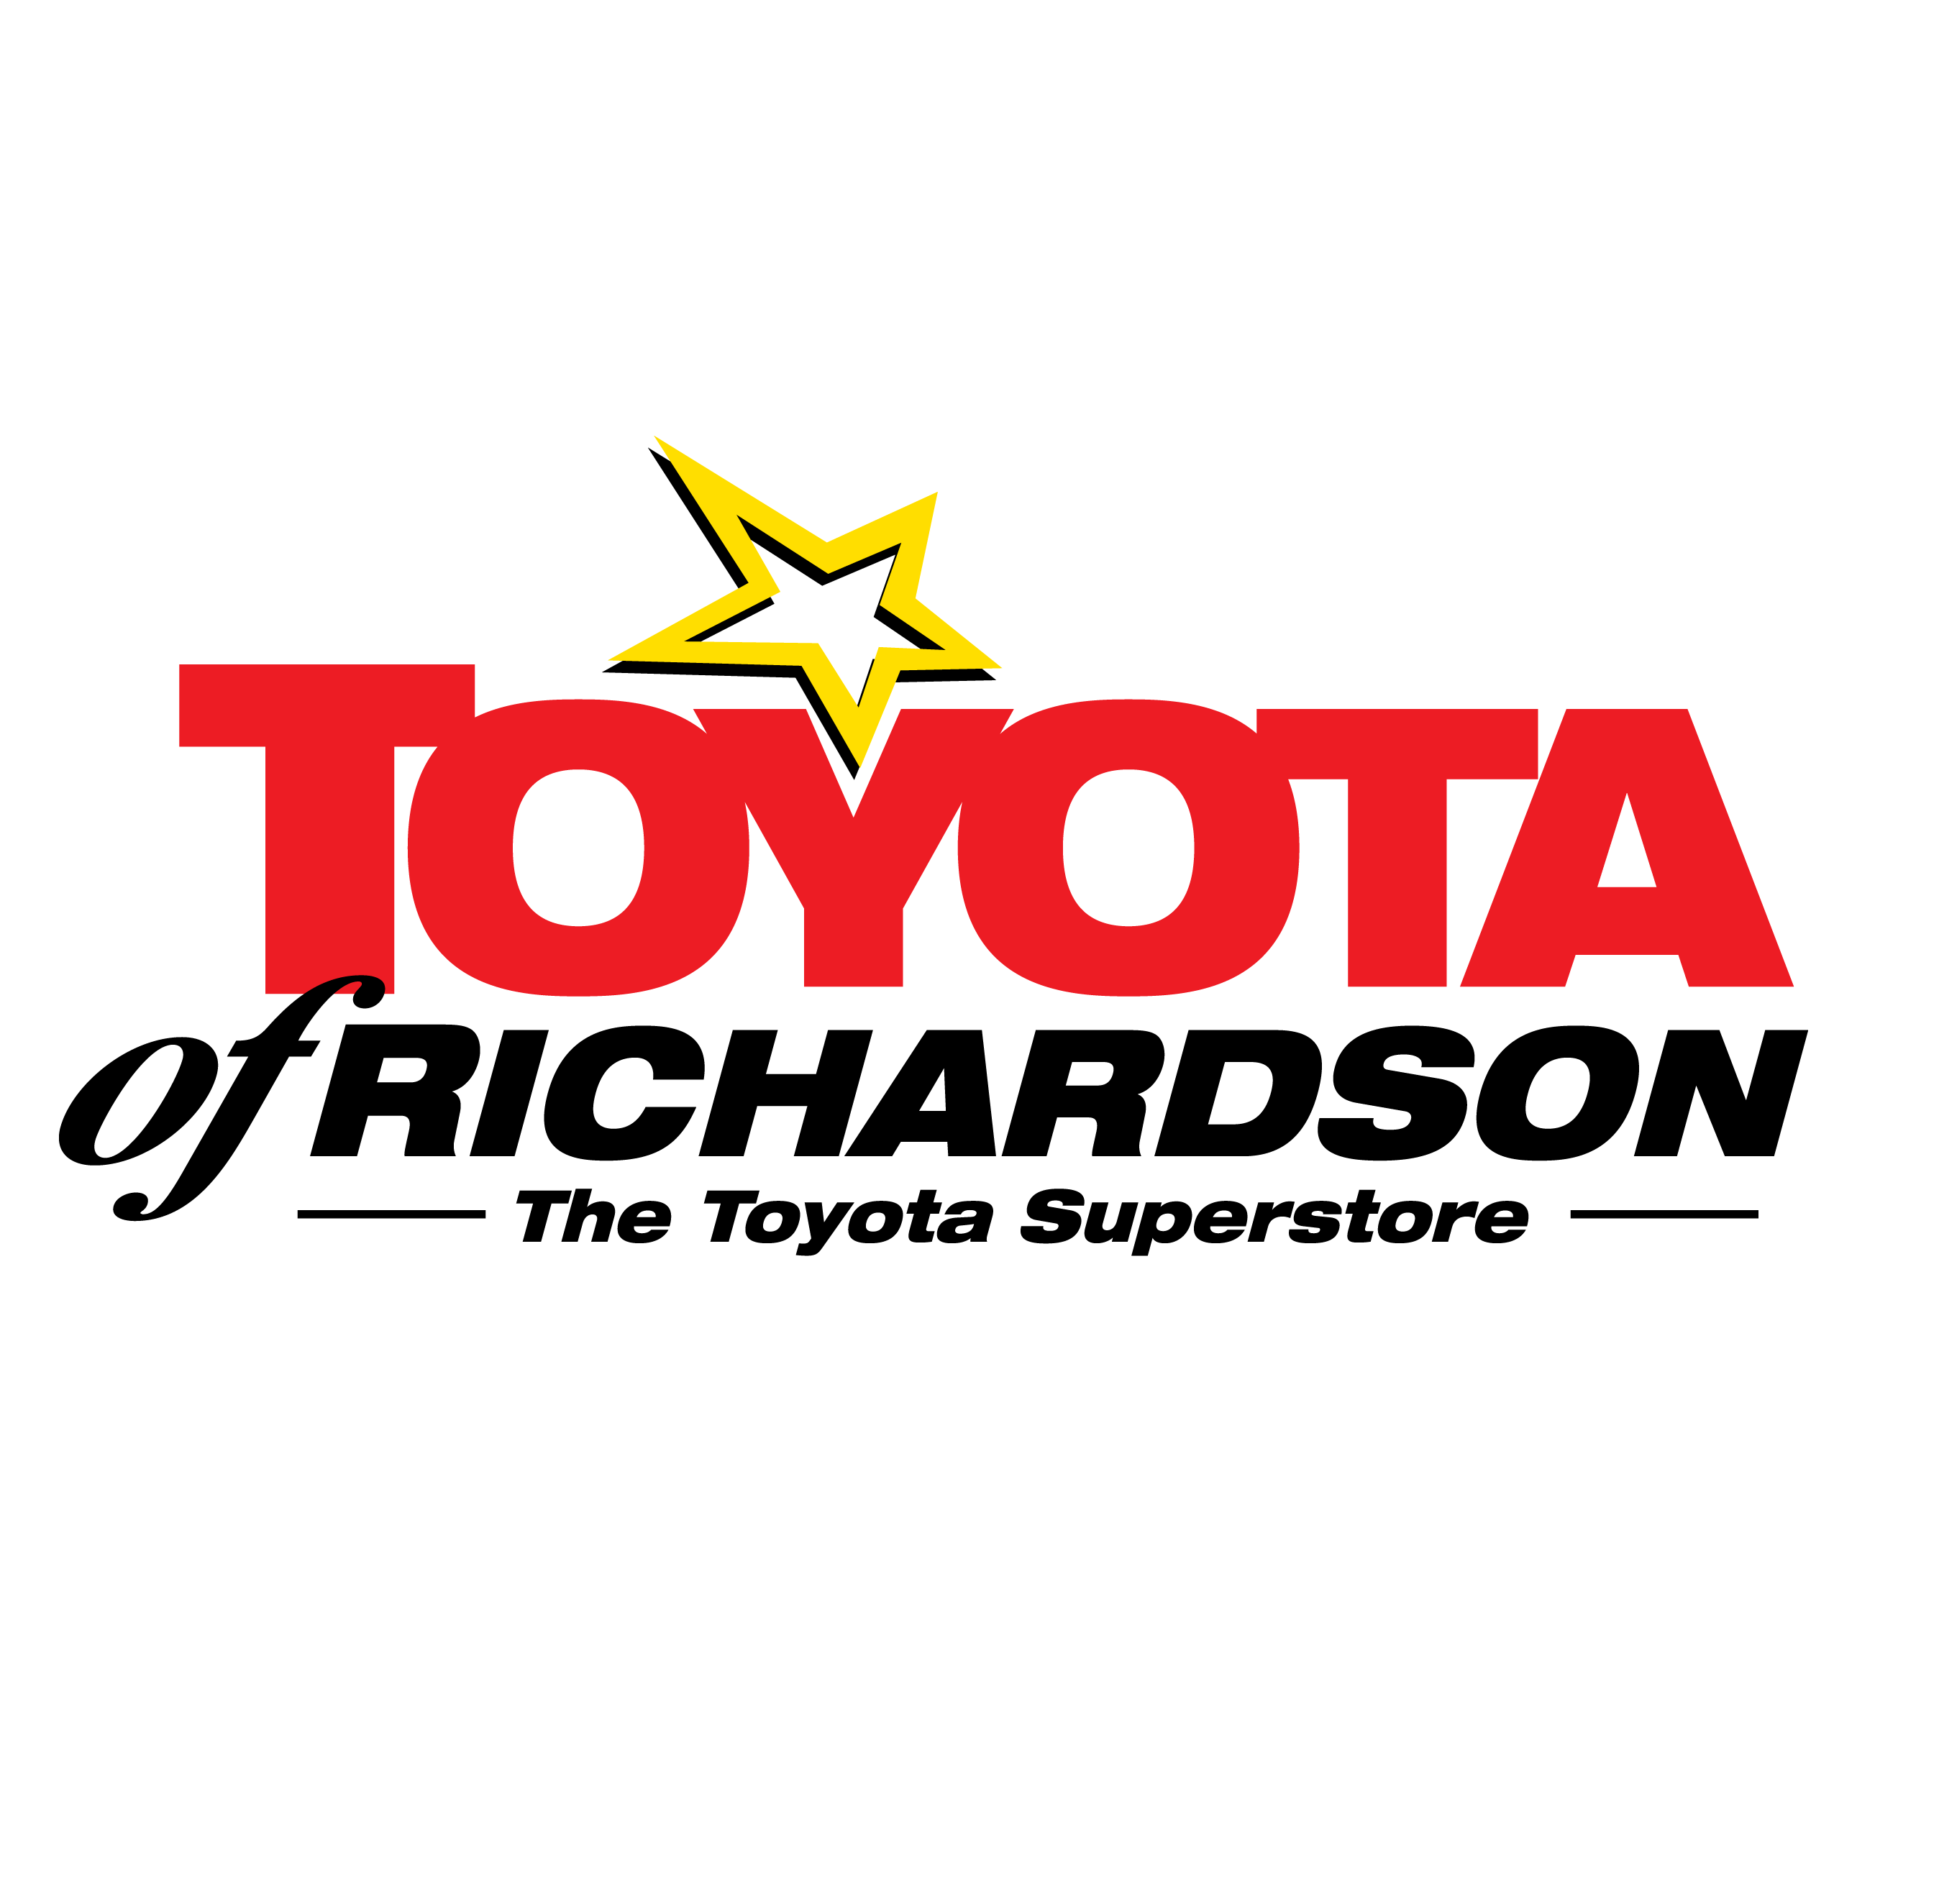 Toyota of Richardson | 6.22.19